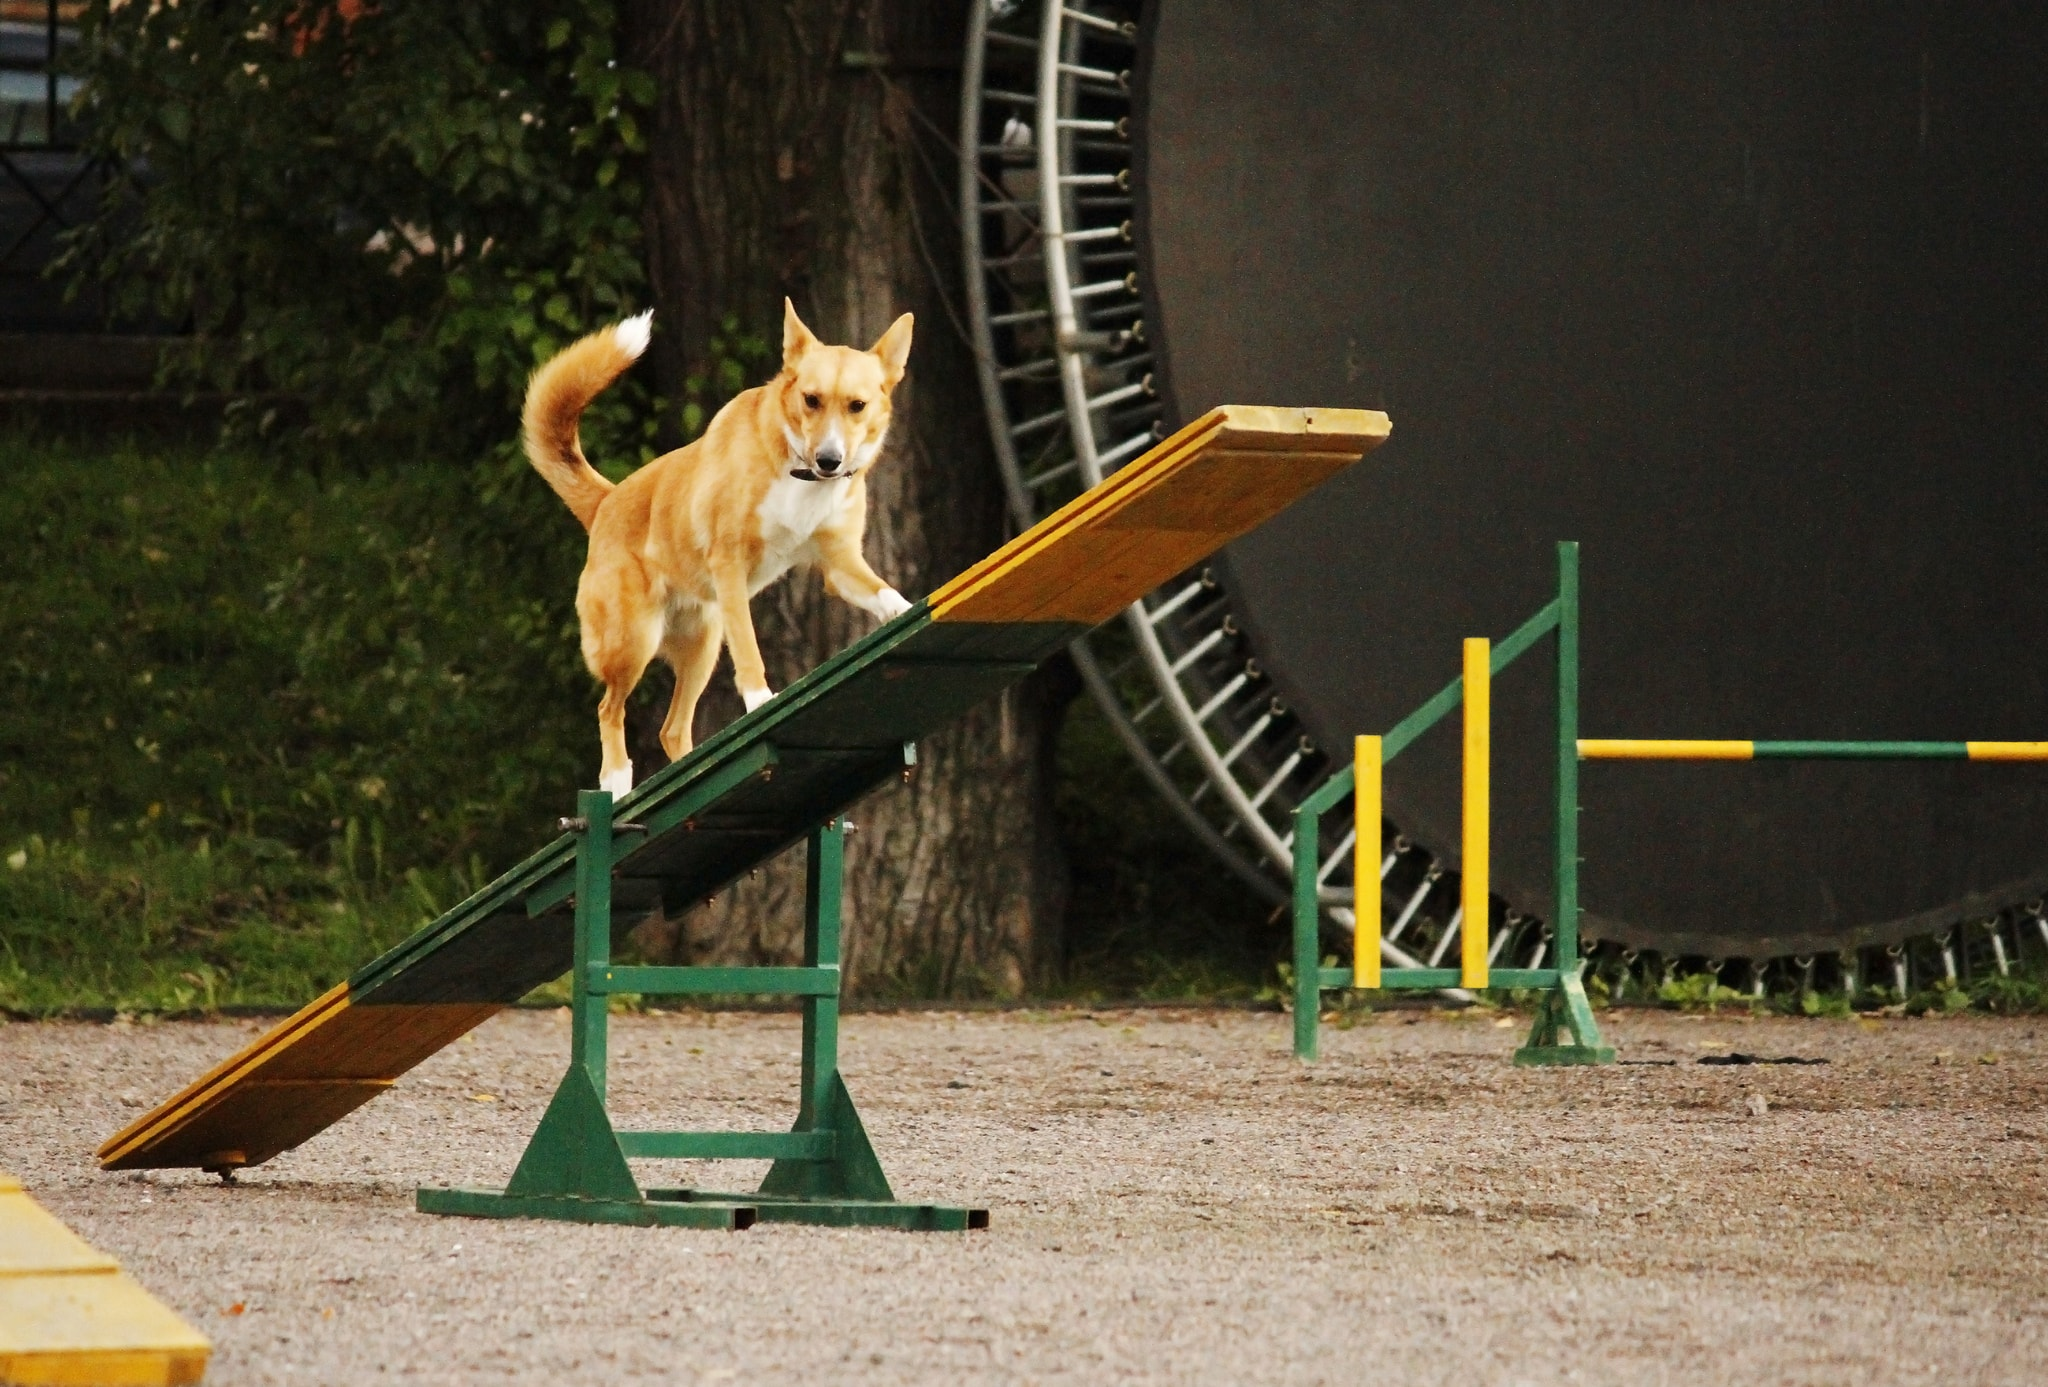 10 Questions to Ask Before Taking a Dog Agility Training Class